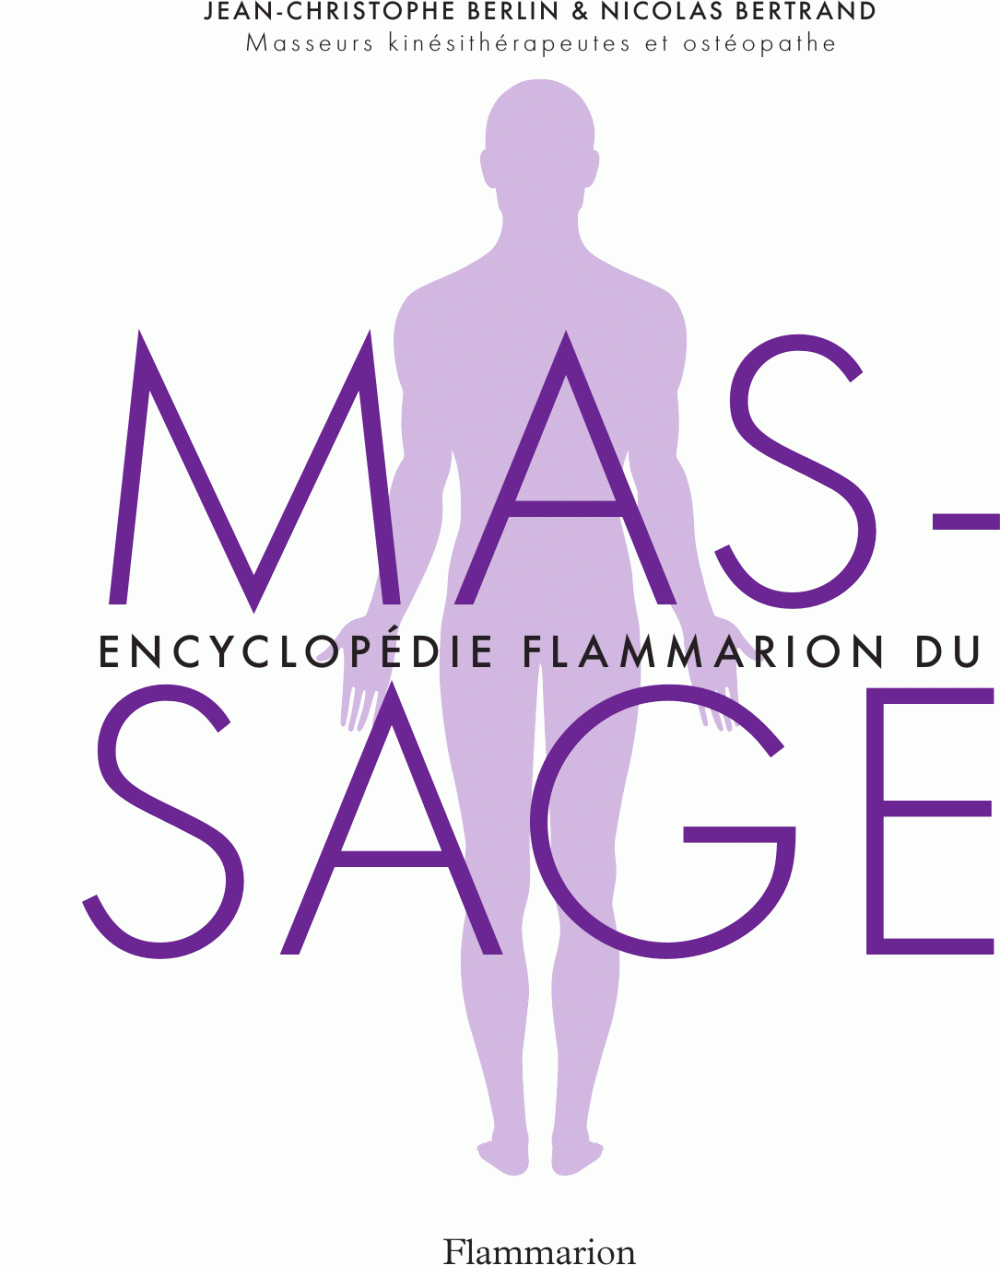 Encyclopédie Flammarion du massage